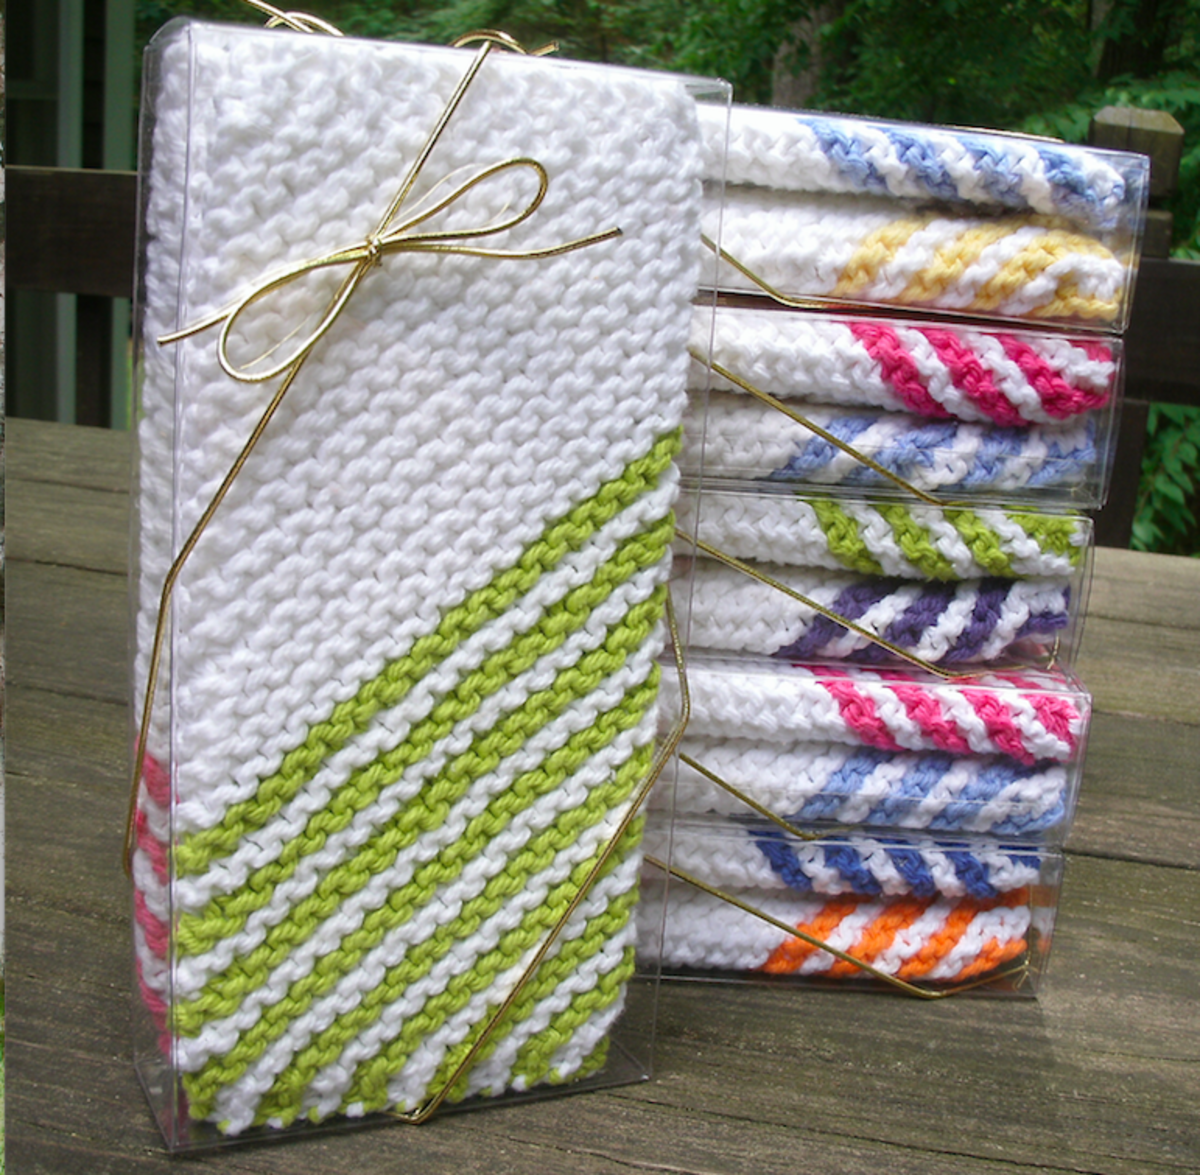 These creations make beautiful and practical gifts.